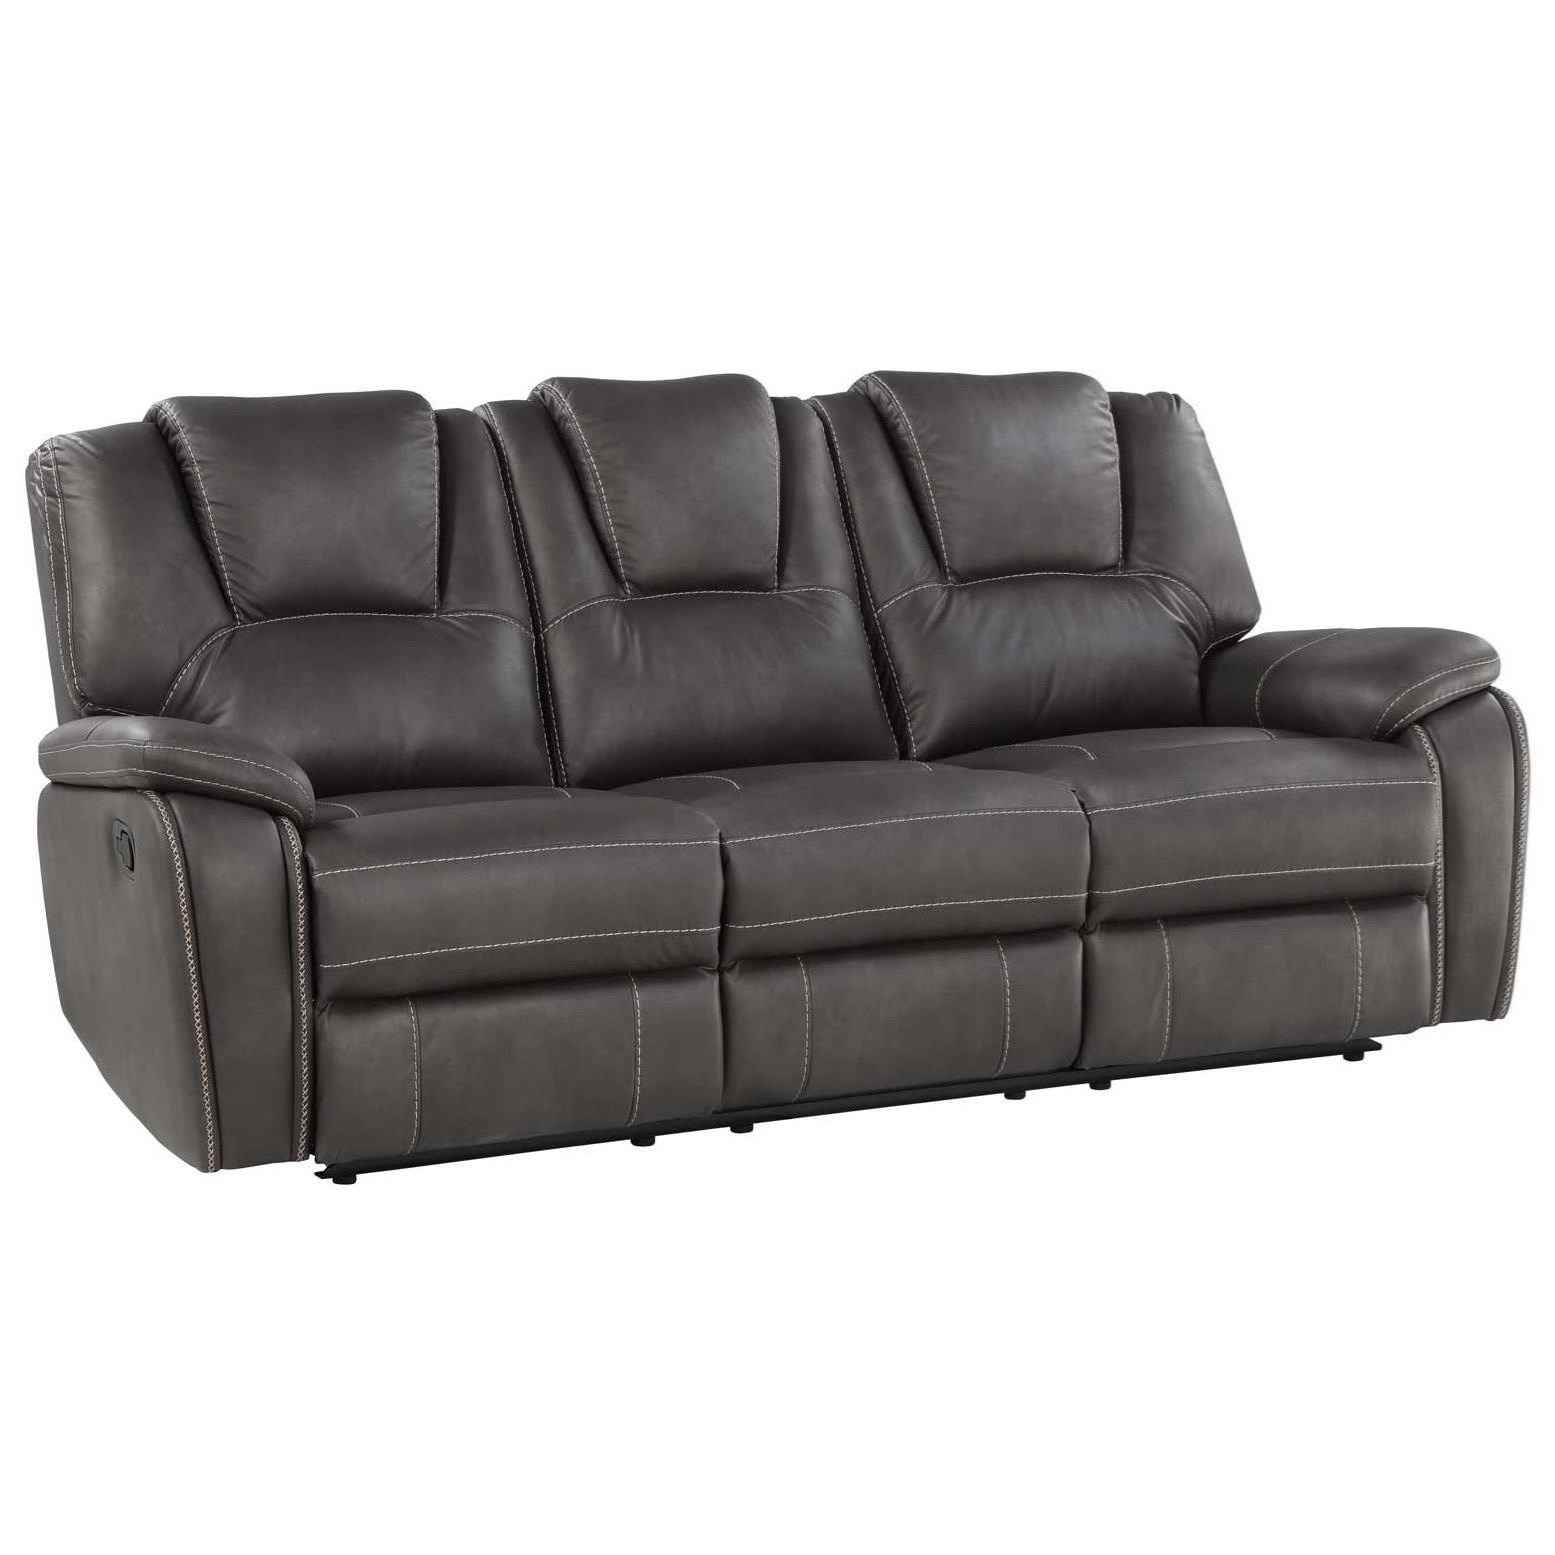 Manual Motion Sofa with Padded Headrests